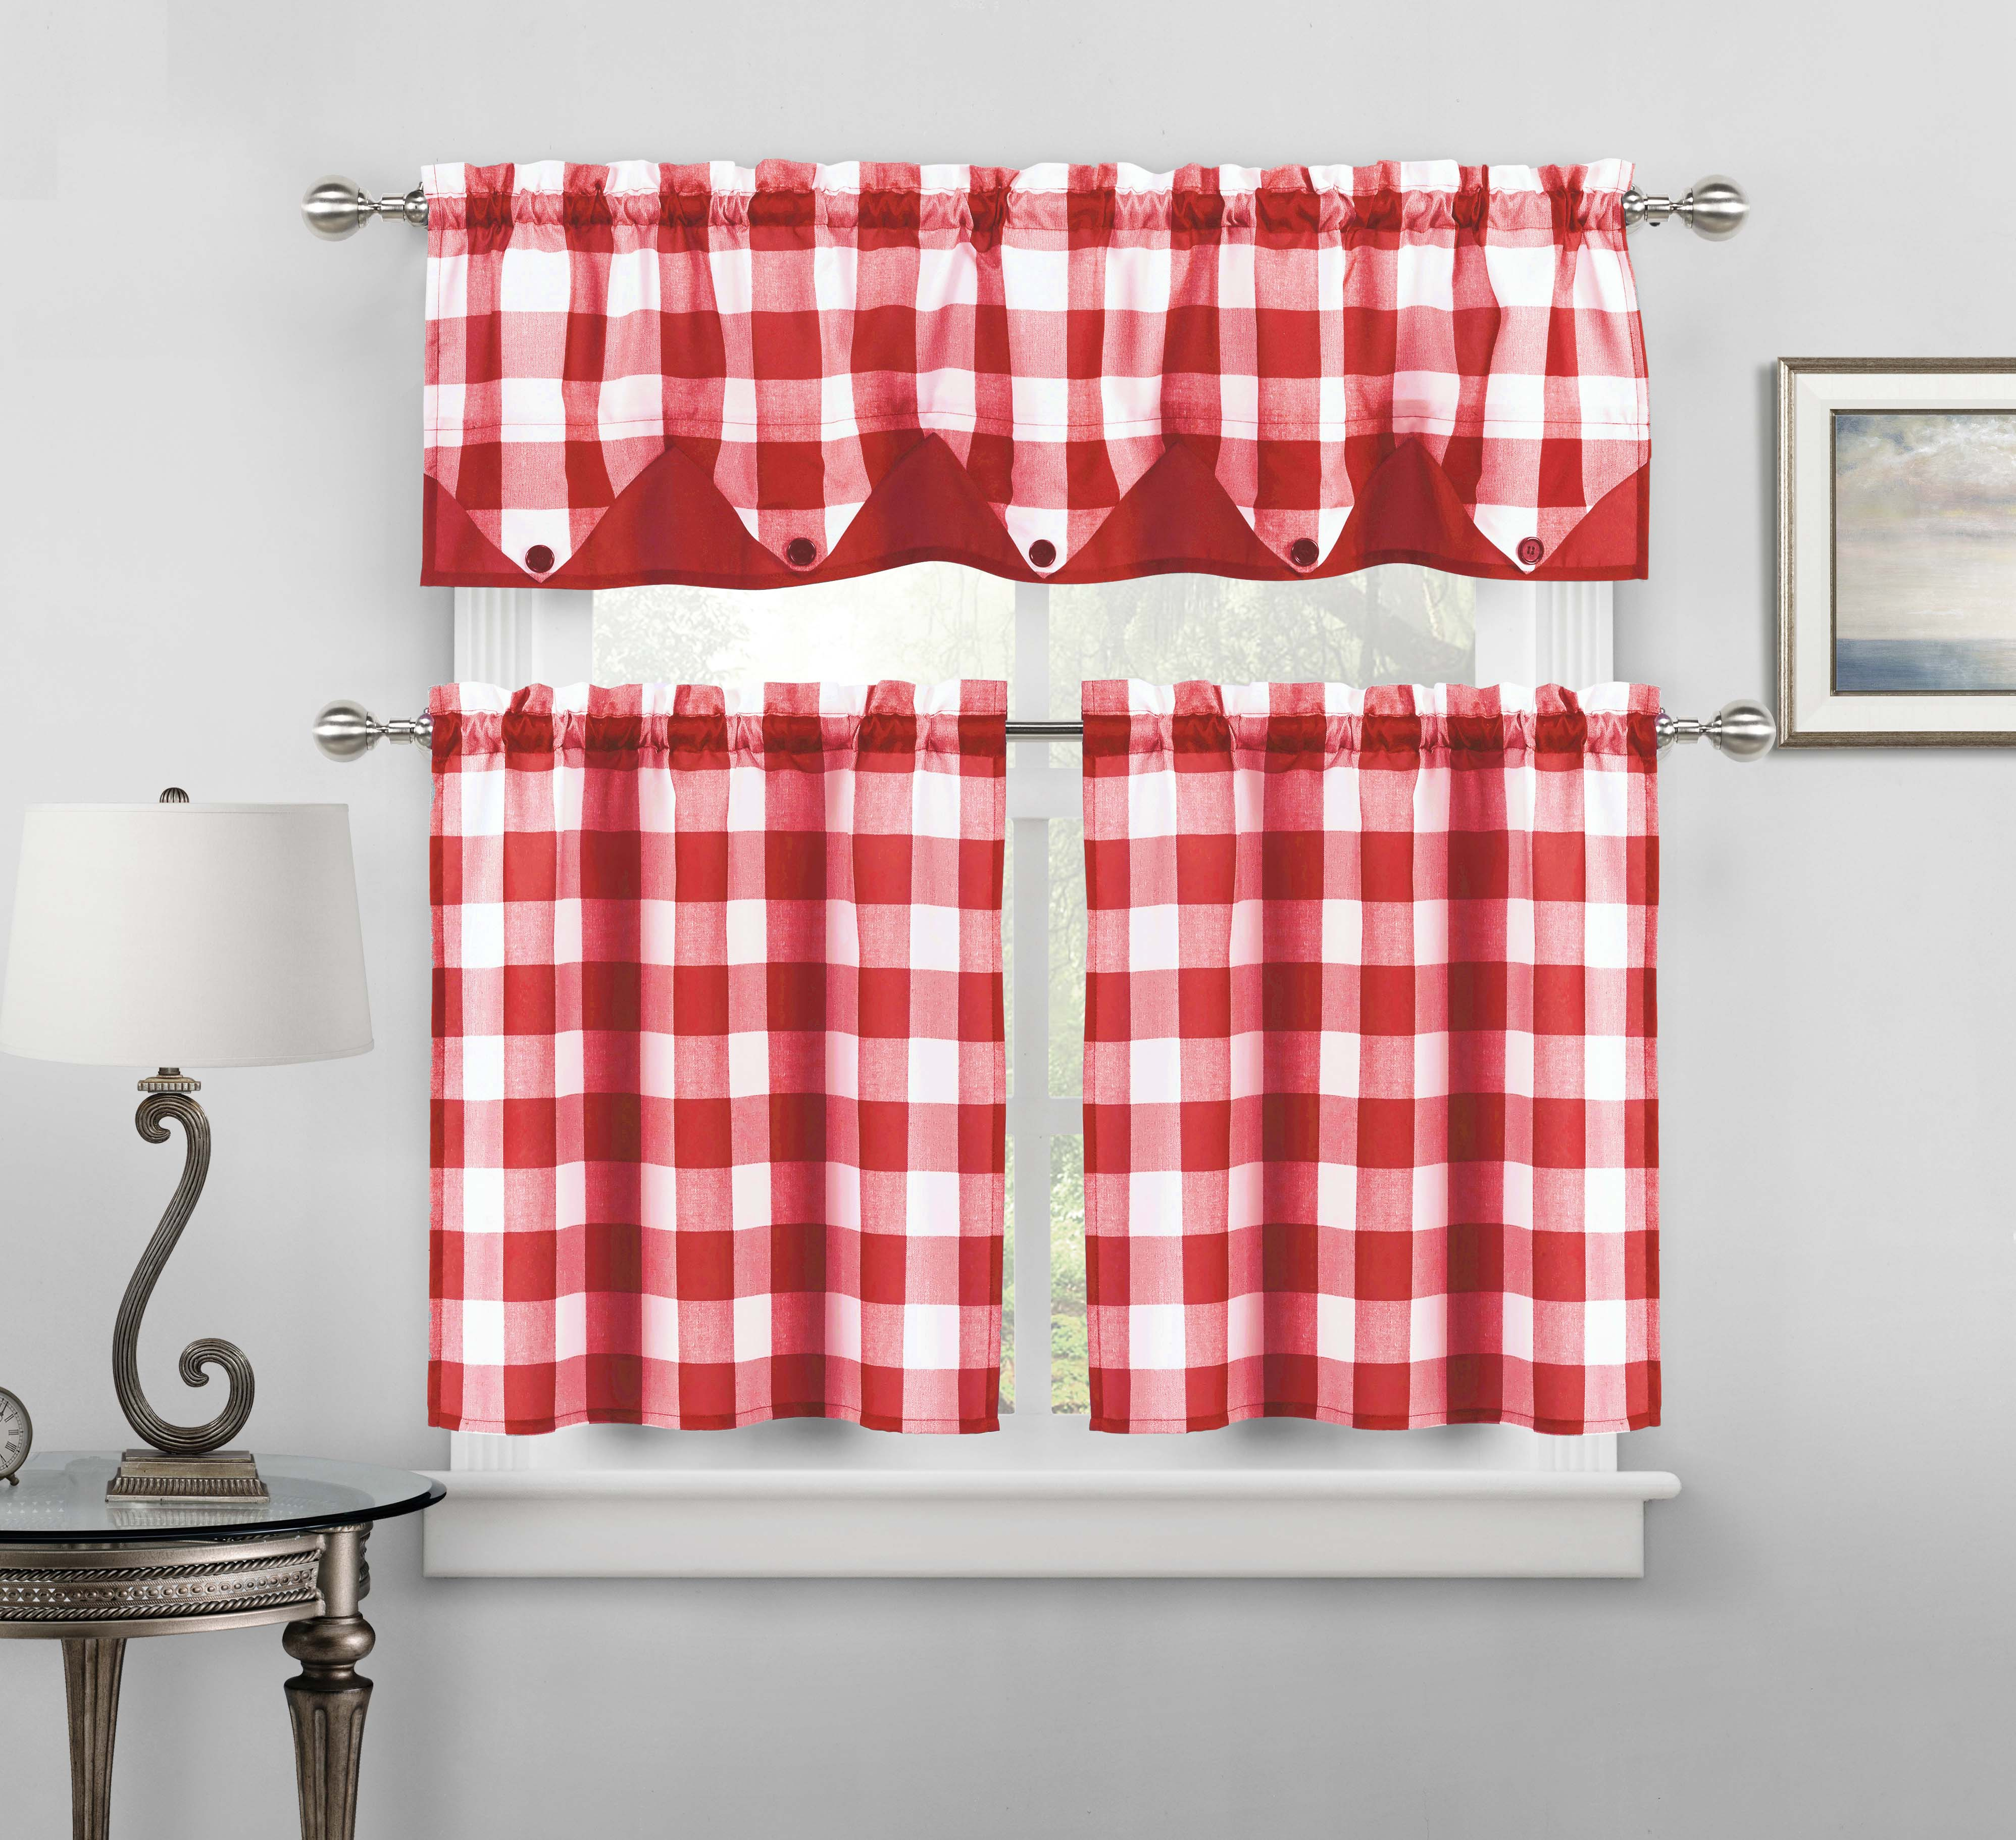 Sheer Small Red and White Three Piece Kitchen/Cafe Tier Window Curtain Set Gingham Check Pattern, 1 Valance, 2 Tiers 24inch L